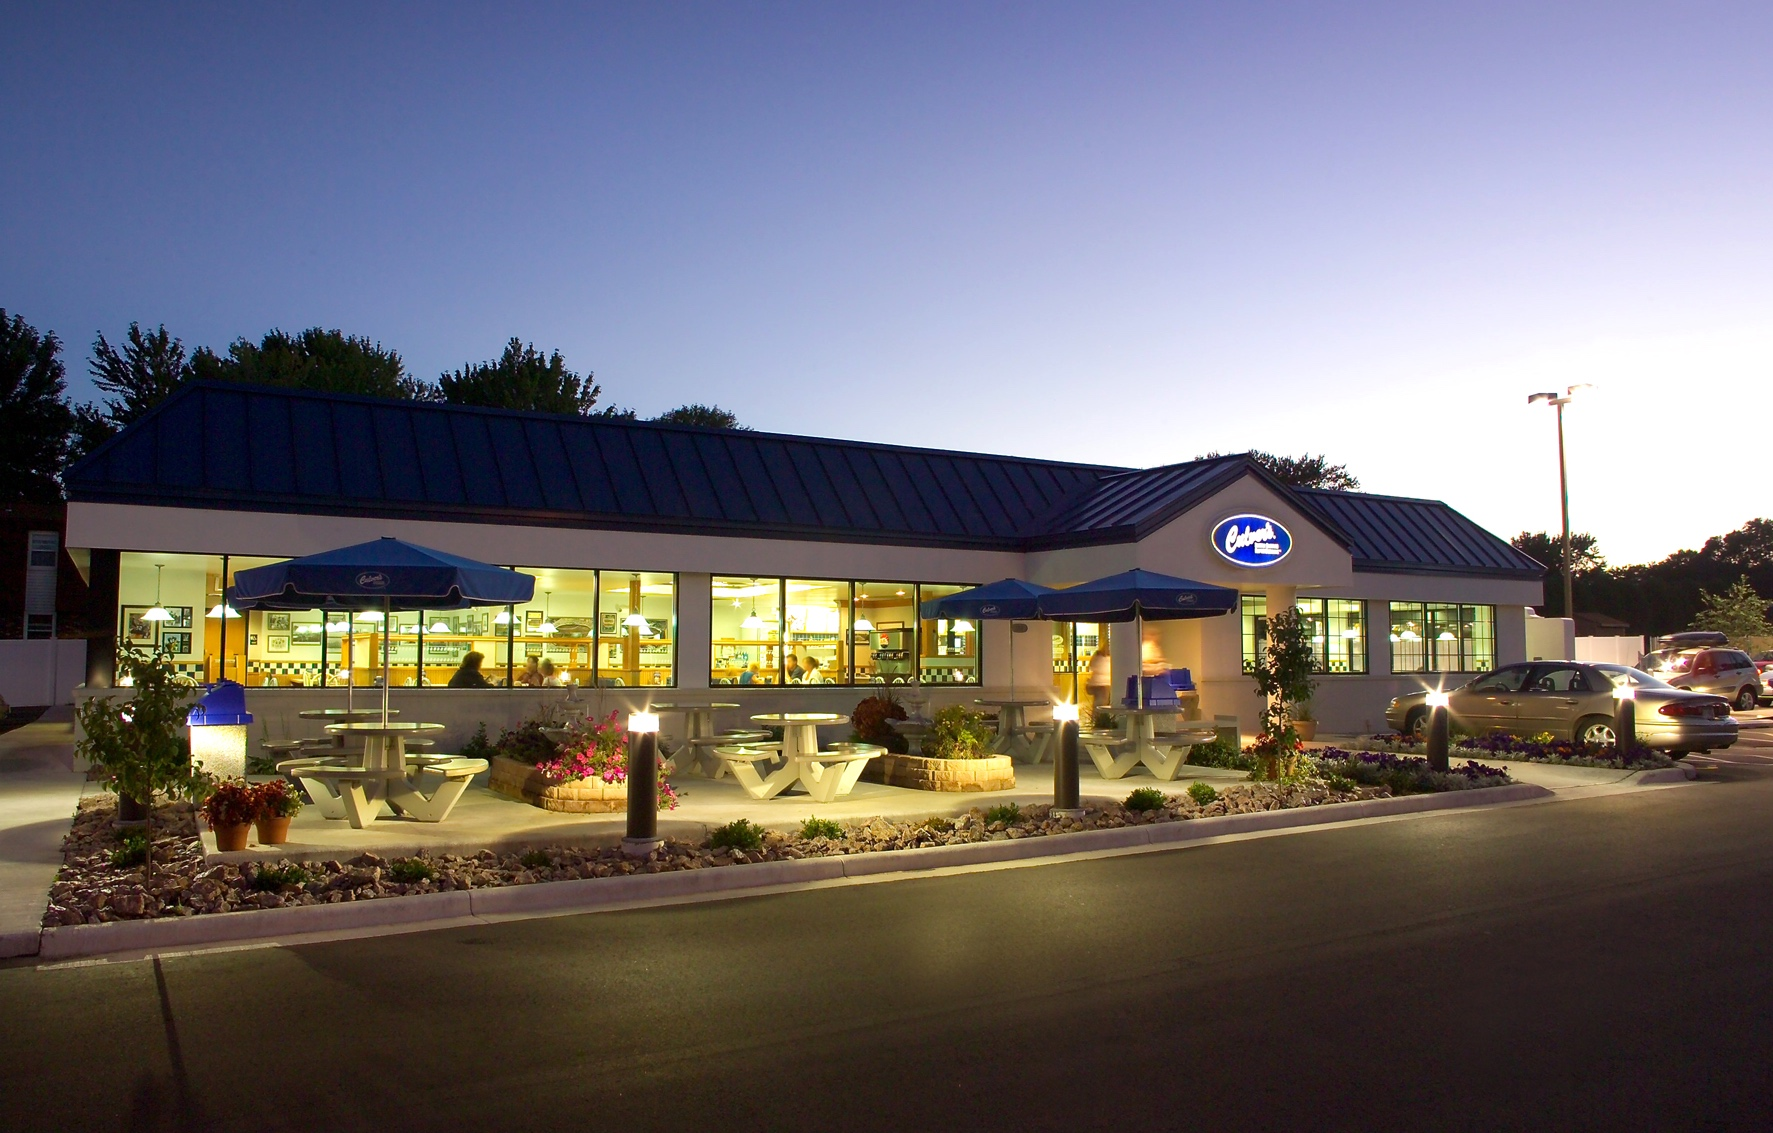 CULVER'S WEST GREEN BAY - GREEN BAY, WISCONSIN